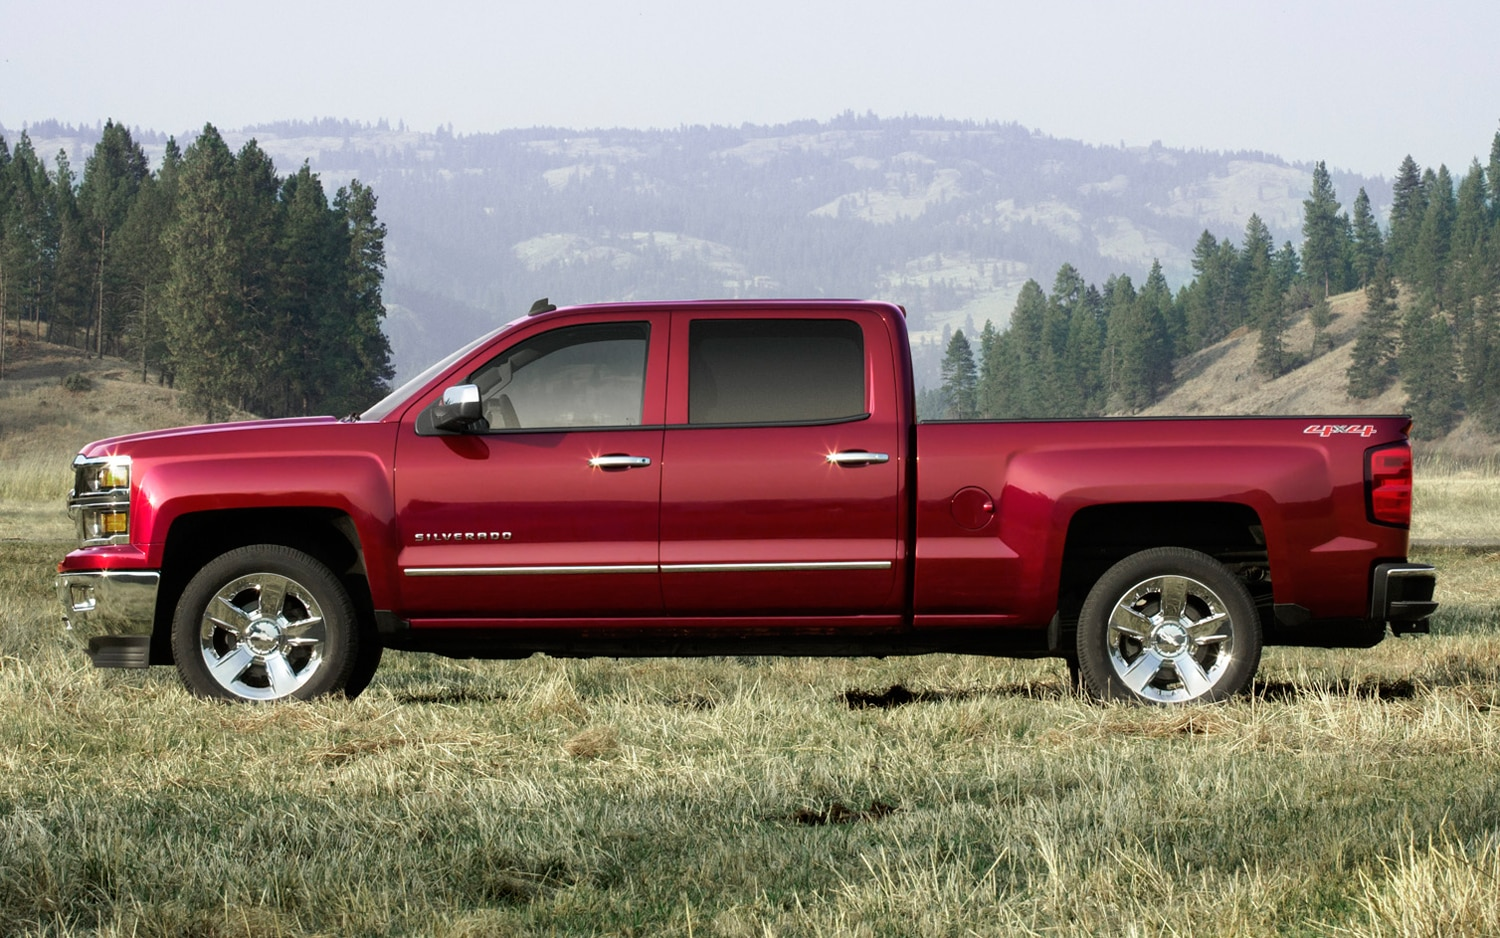 2014 Chevrolet Silverado Side Profile